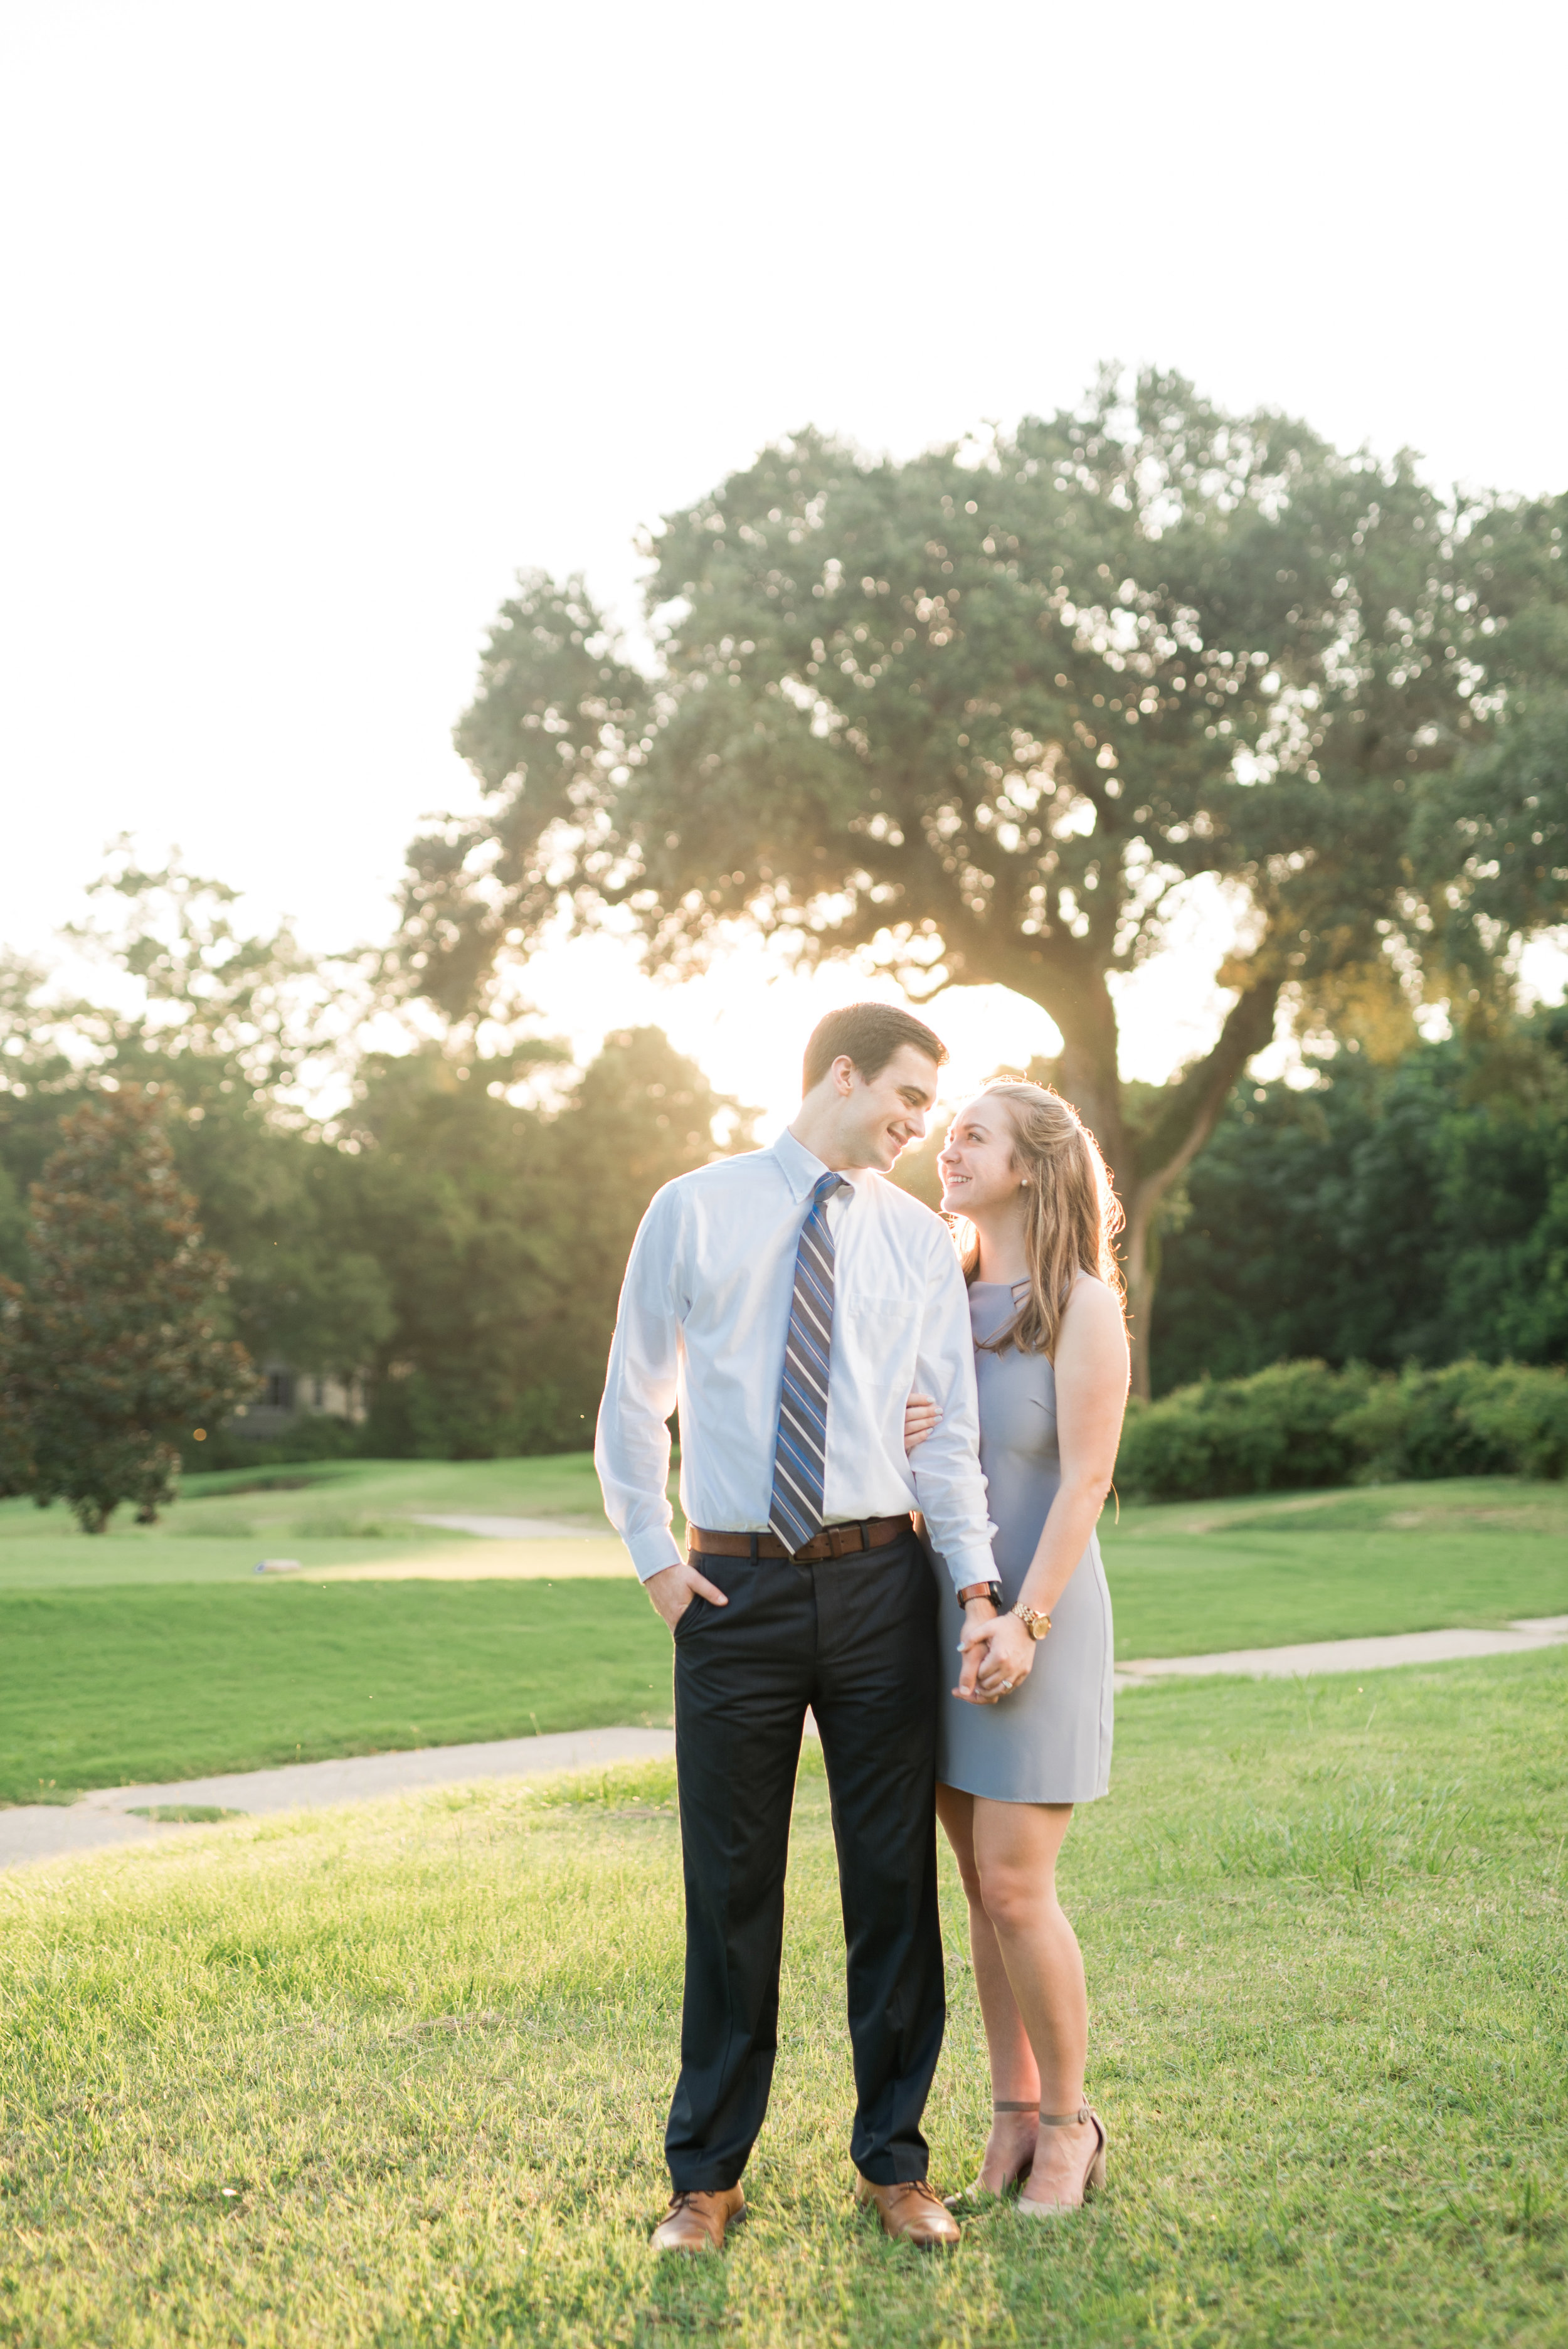 Spring Hill College Couple Portrait Session / maternity session / baby announcement / portrait photography by kristen marcus photographer